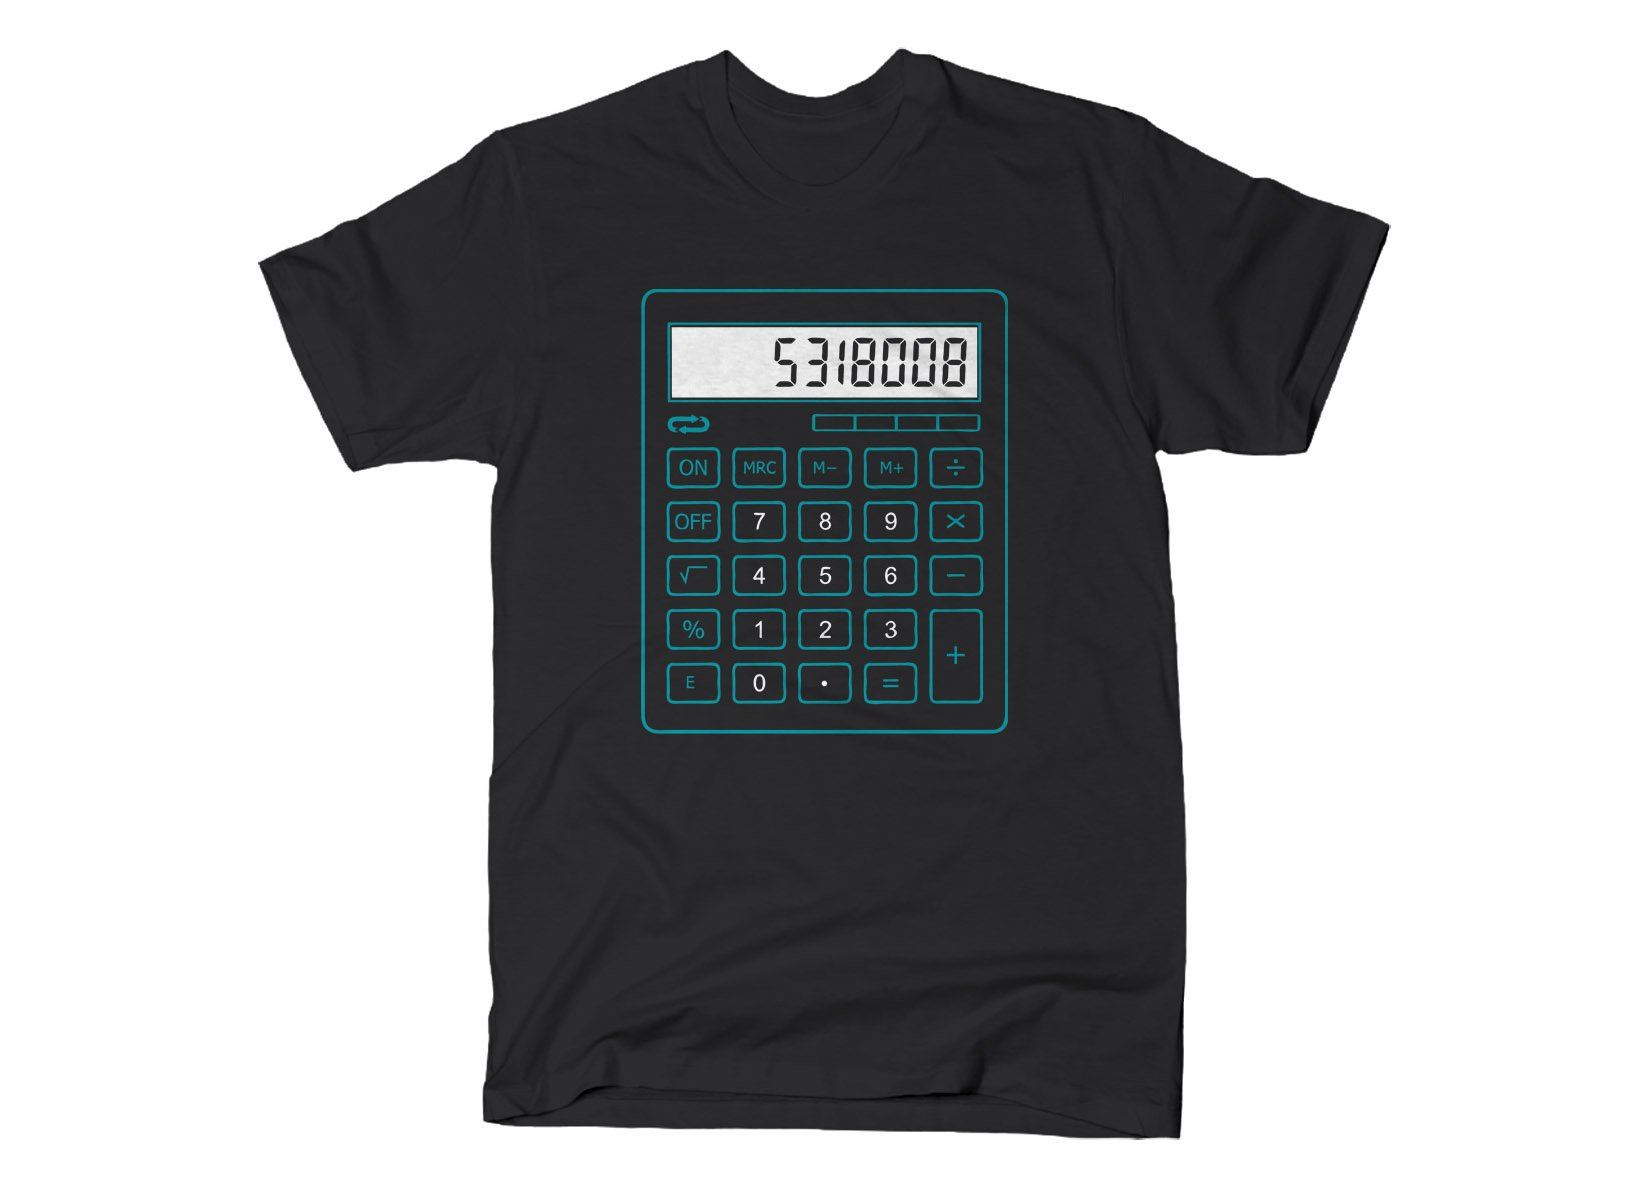 5318008 Calculator on Mens T-Shirt